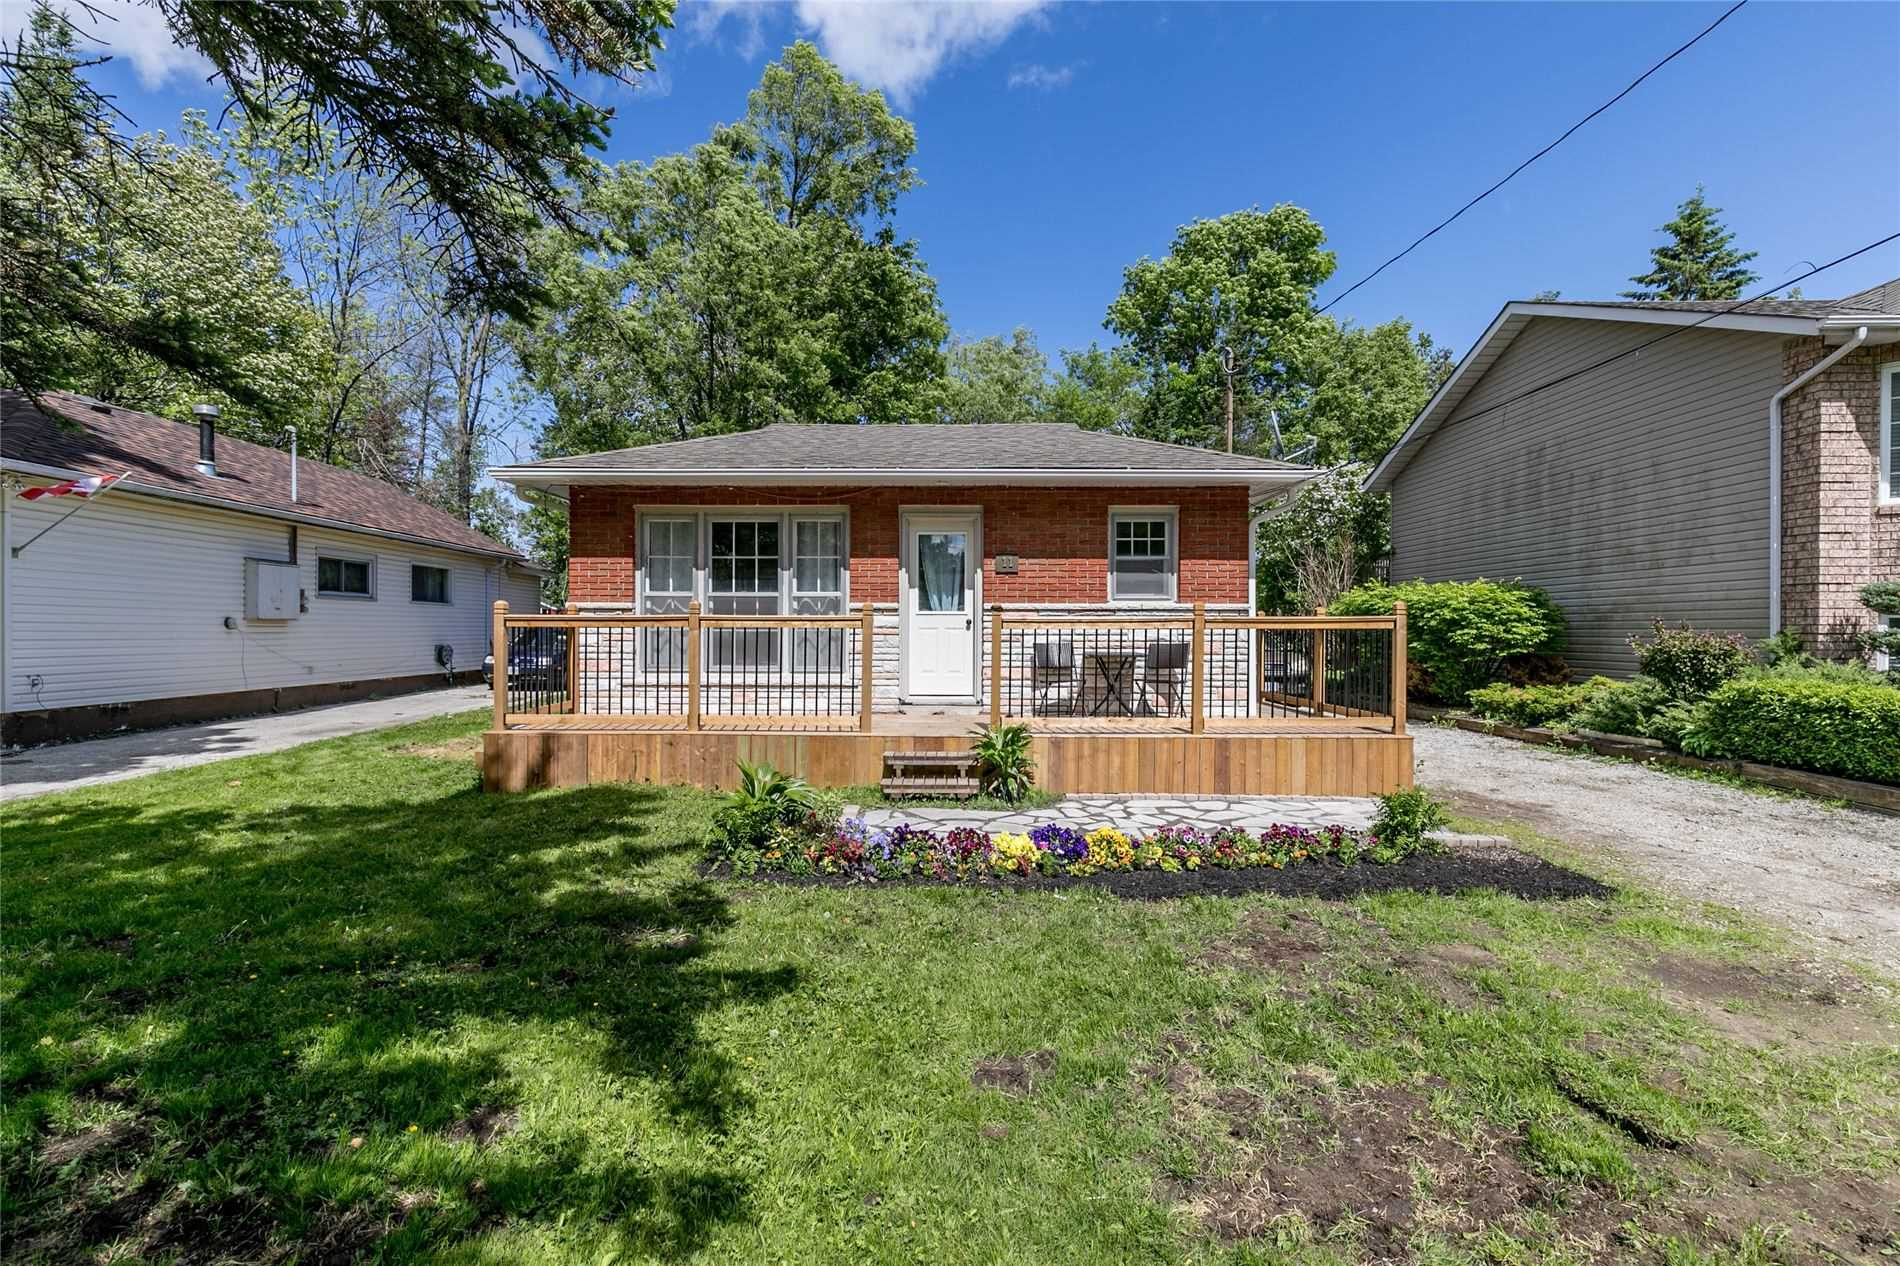 pictures of house for sale MLS: S5072400 located at 11 47th St S, Wasaga Beach L9Z1Y6